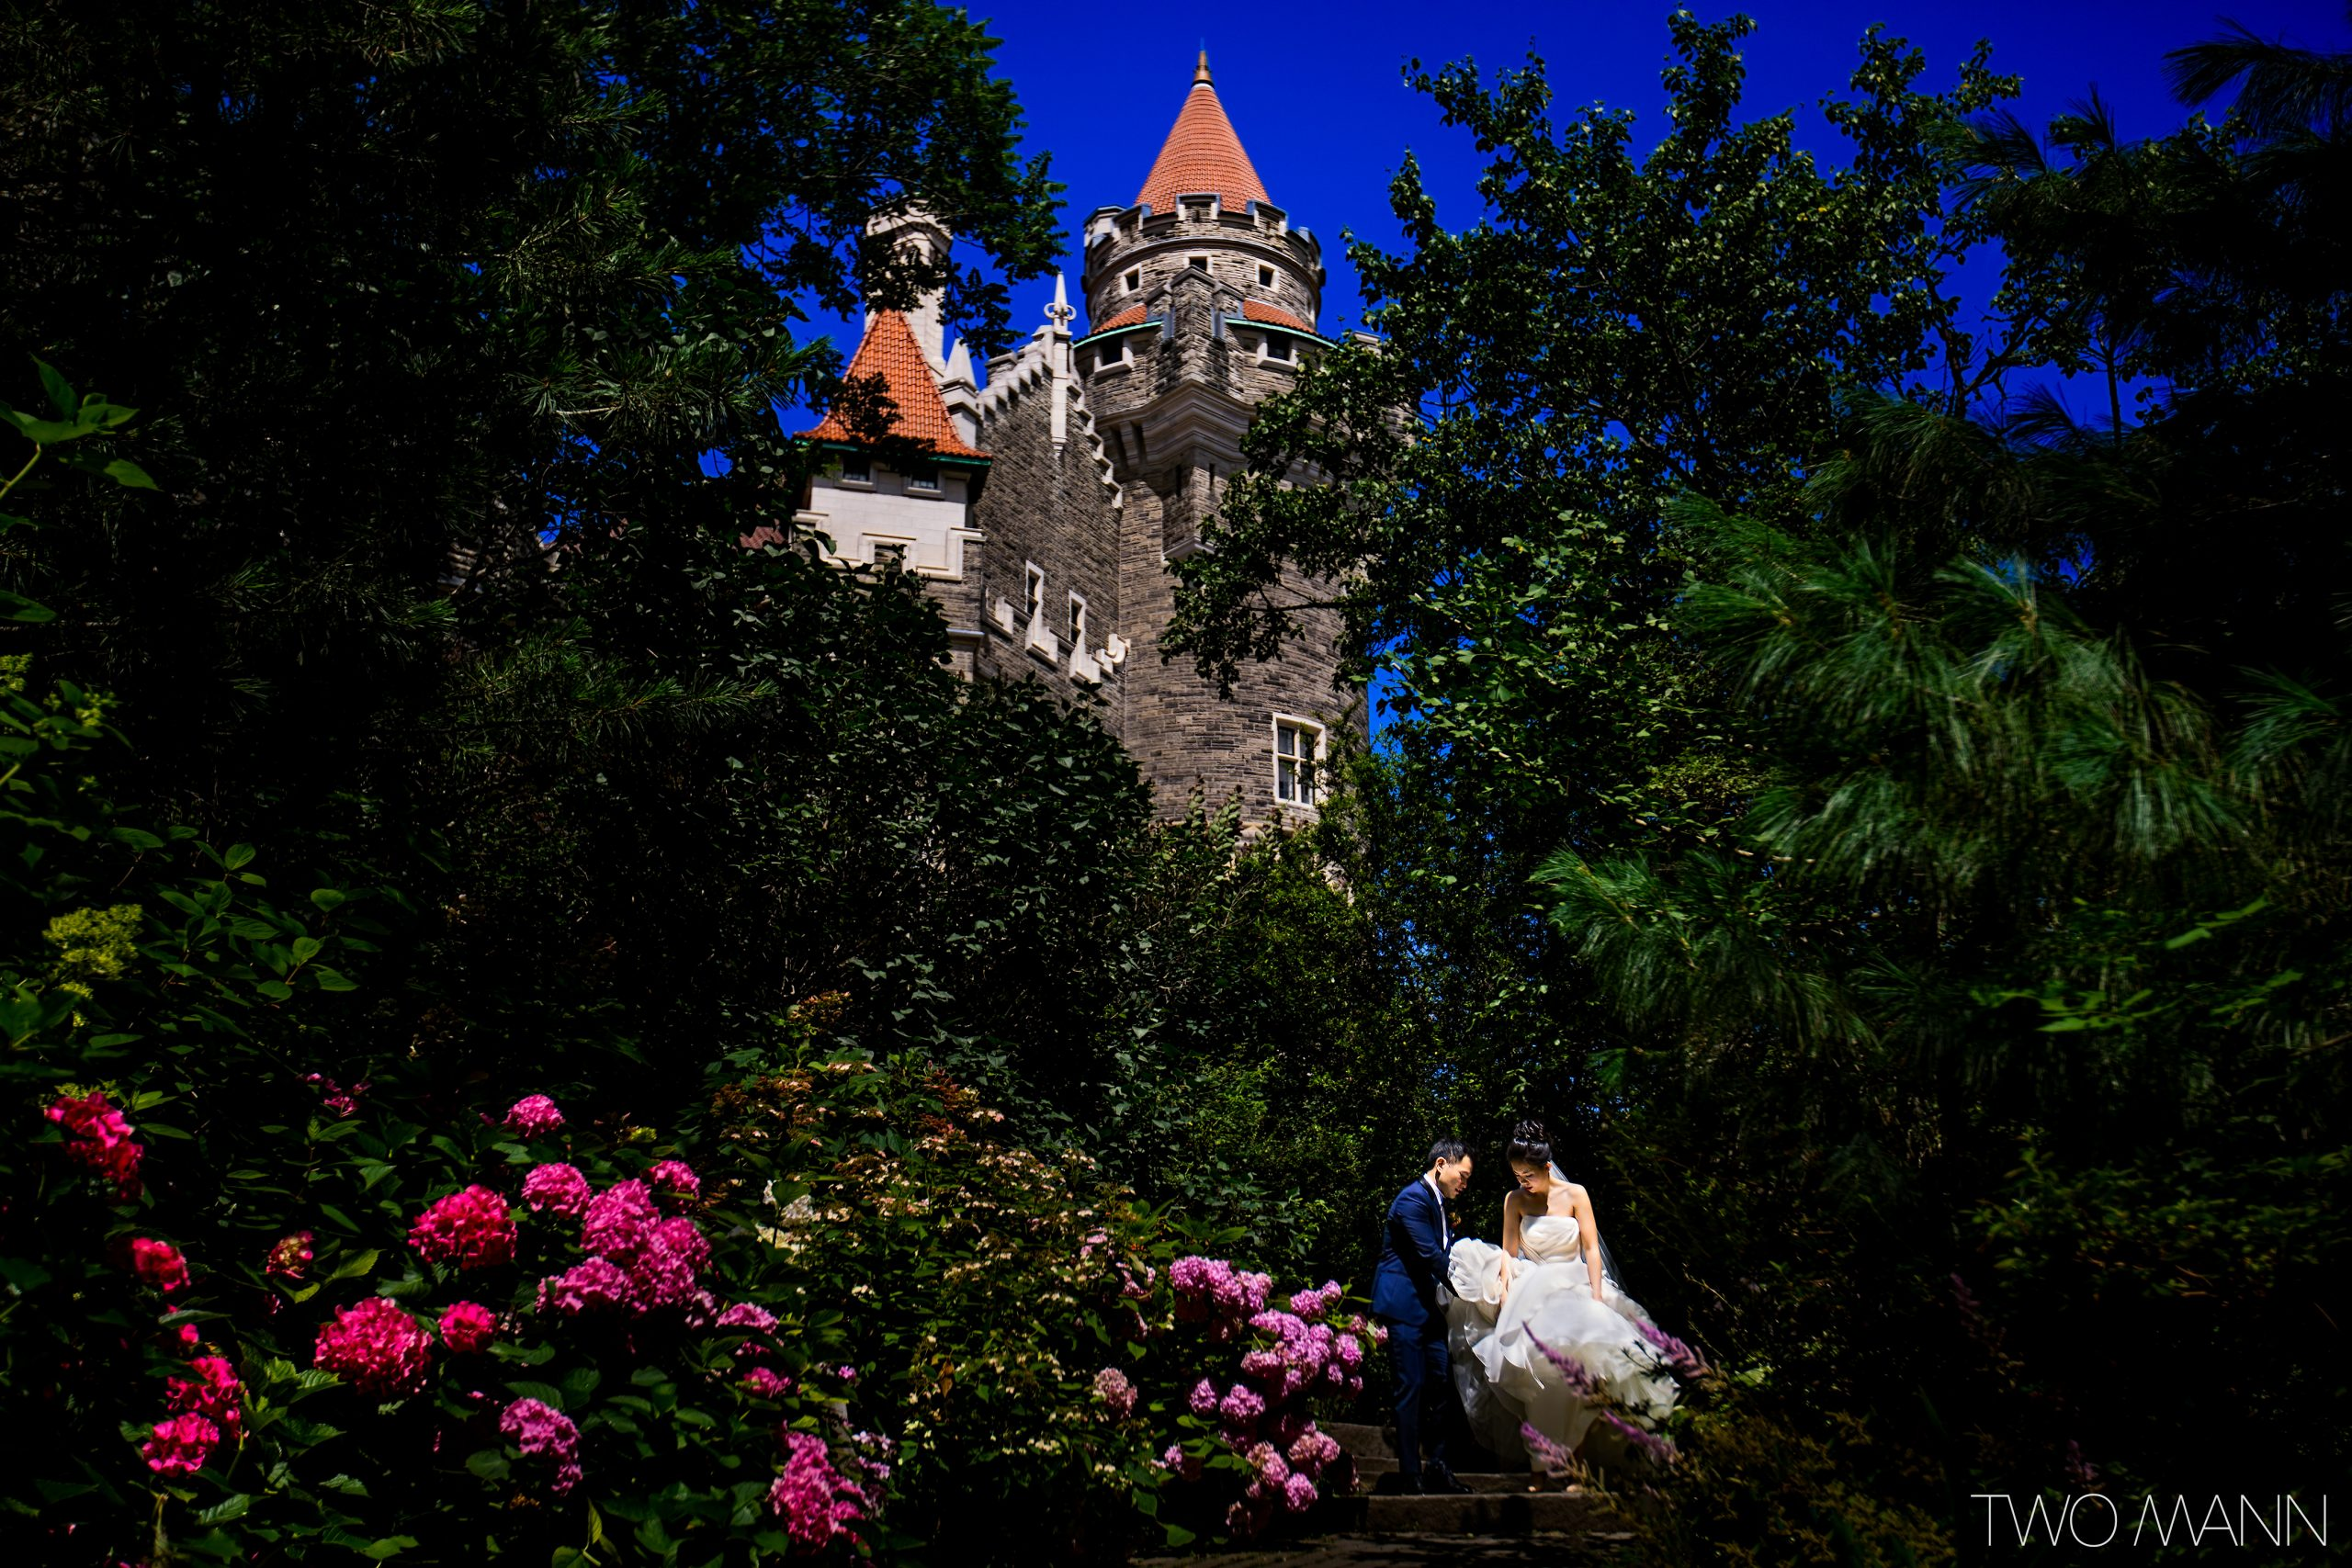 groom helping bride down stairs amongst flowers with castle behind